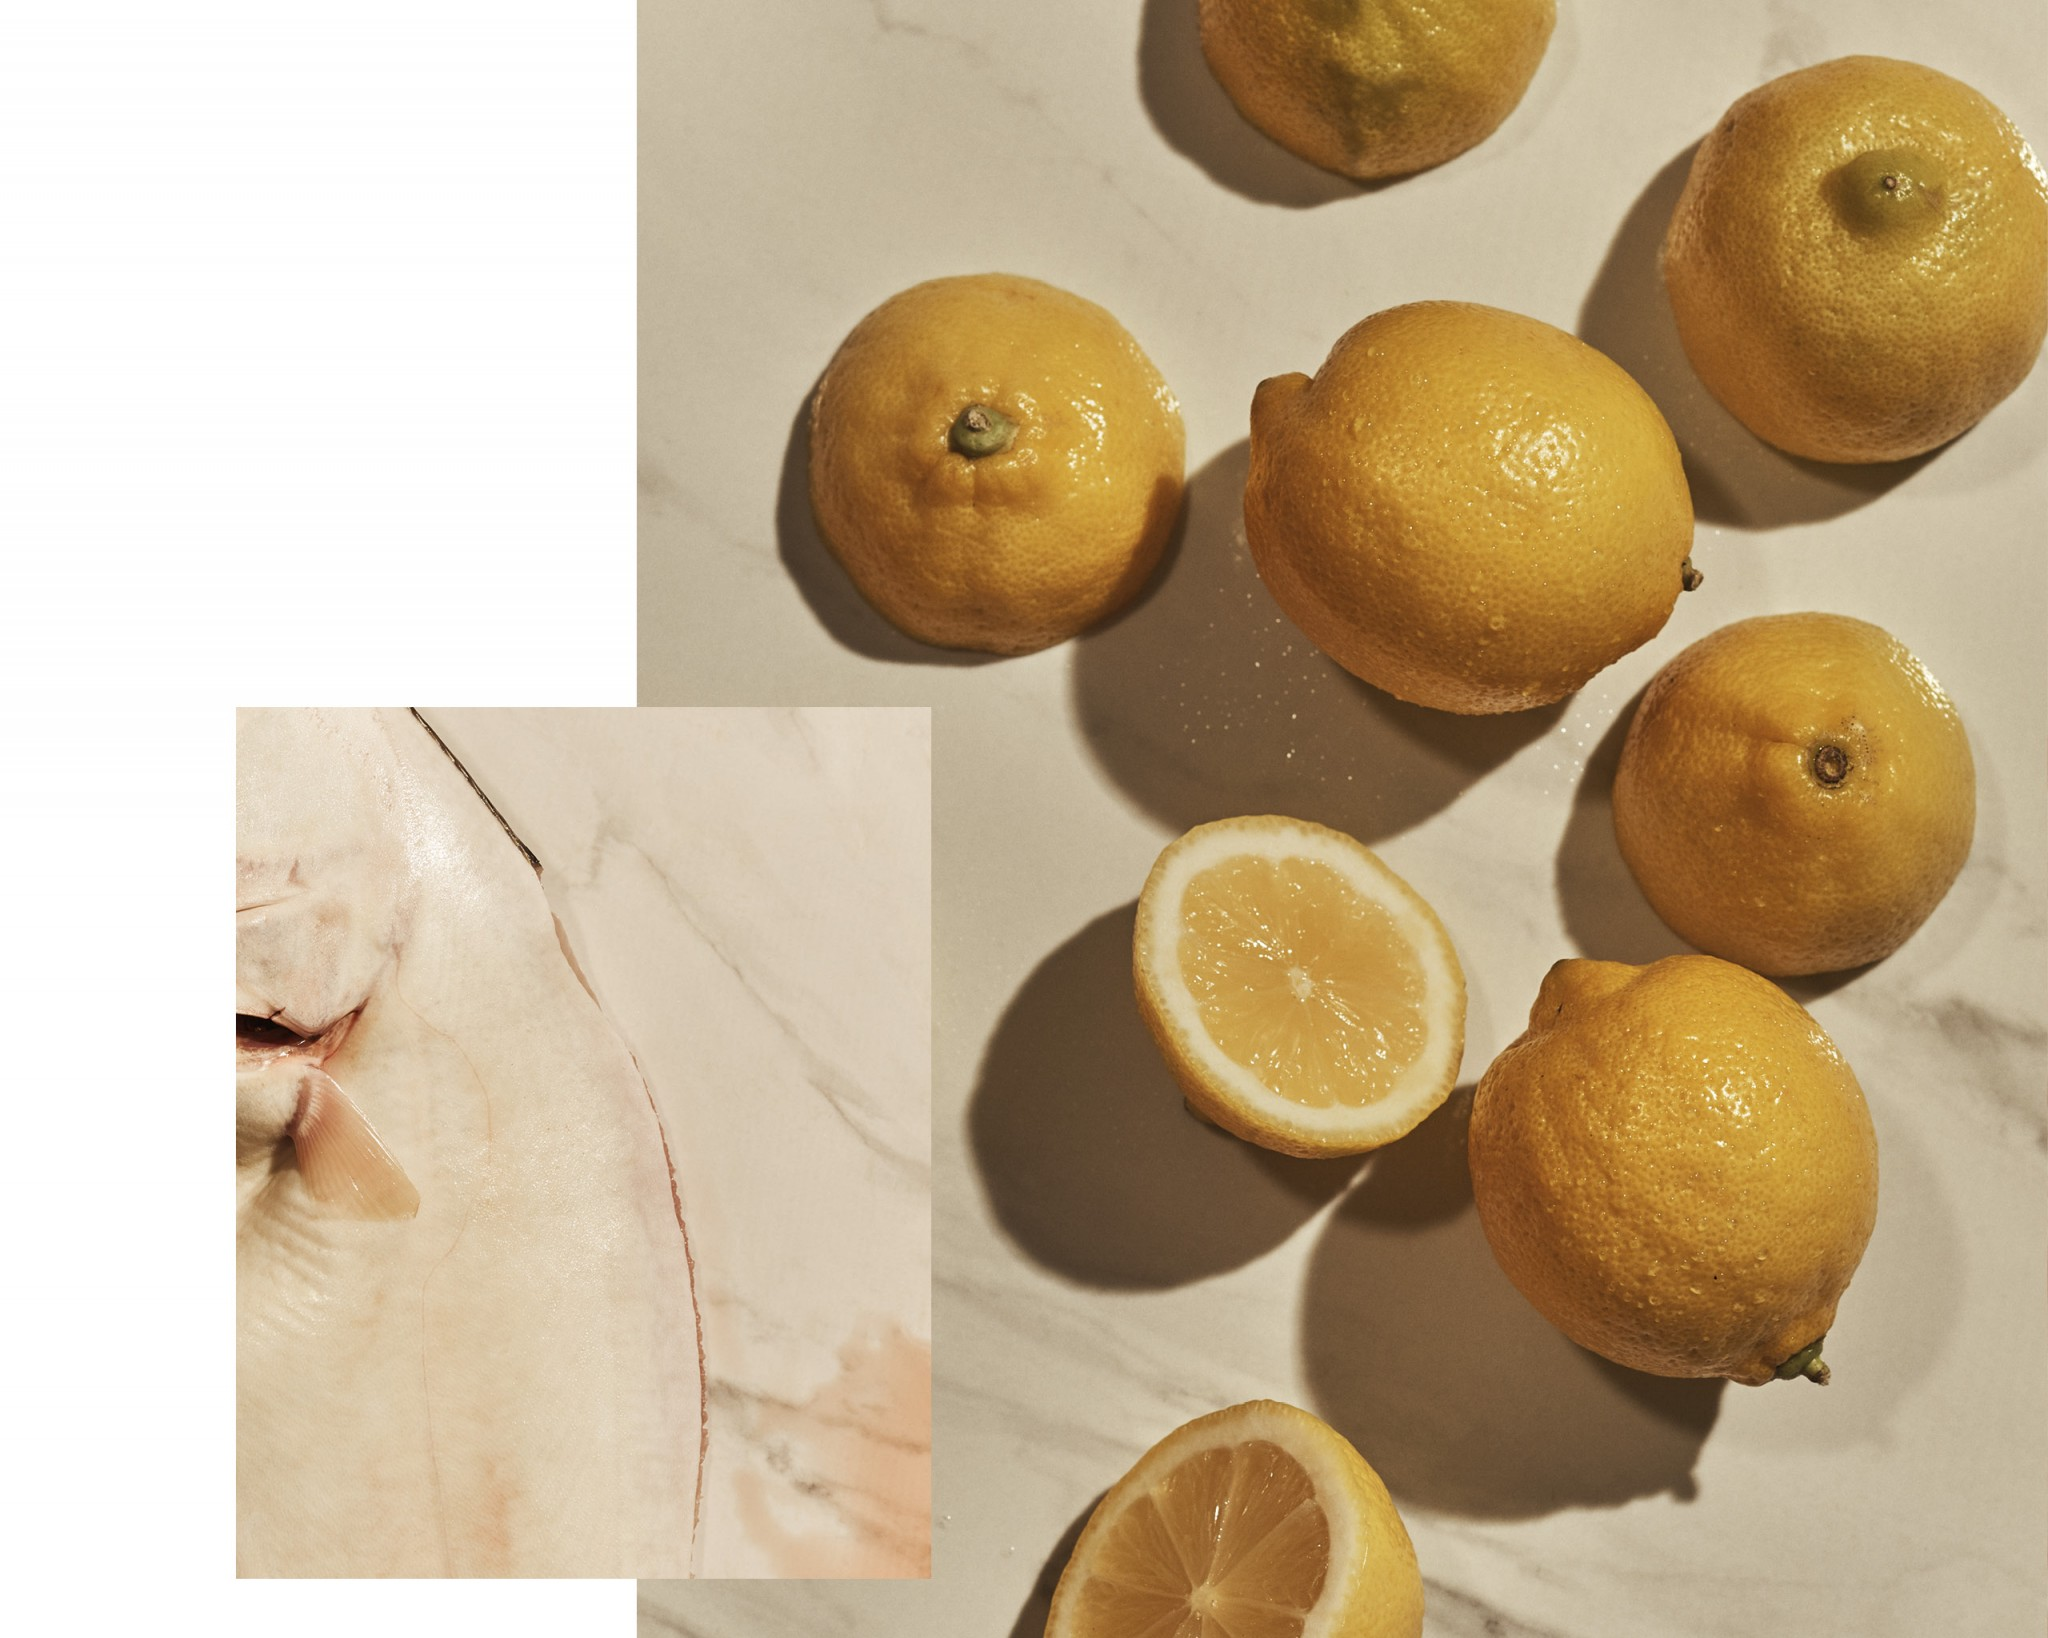 Two closeup images of a sea halibut and lemons